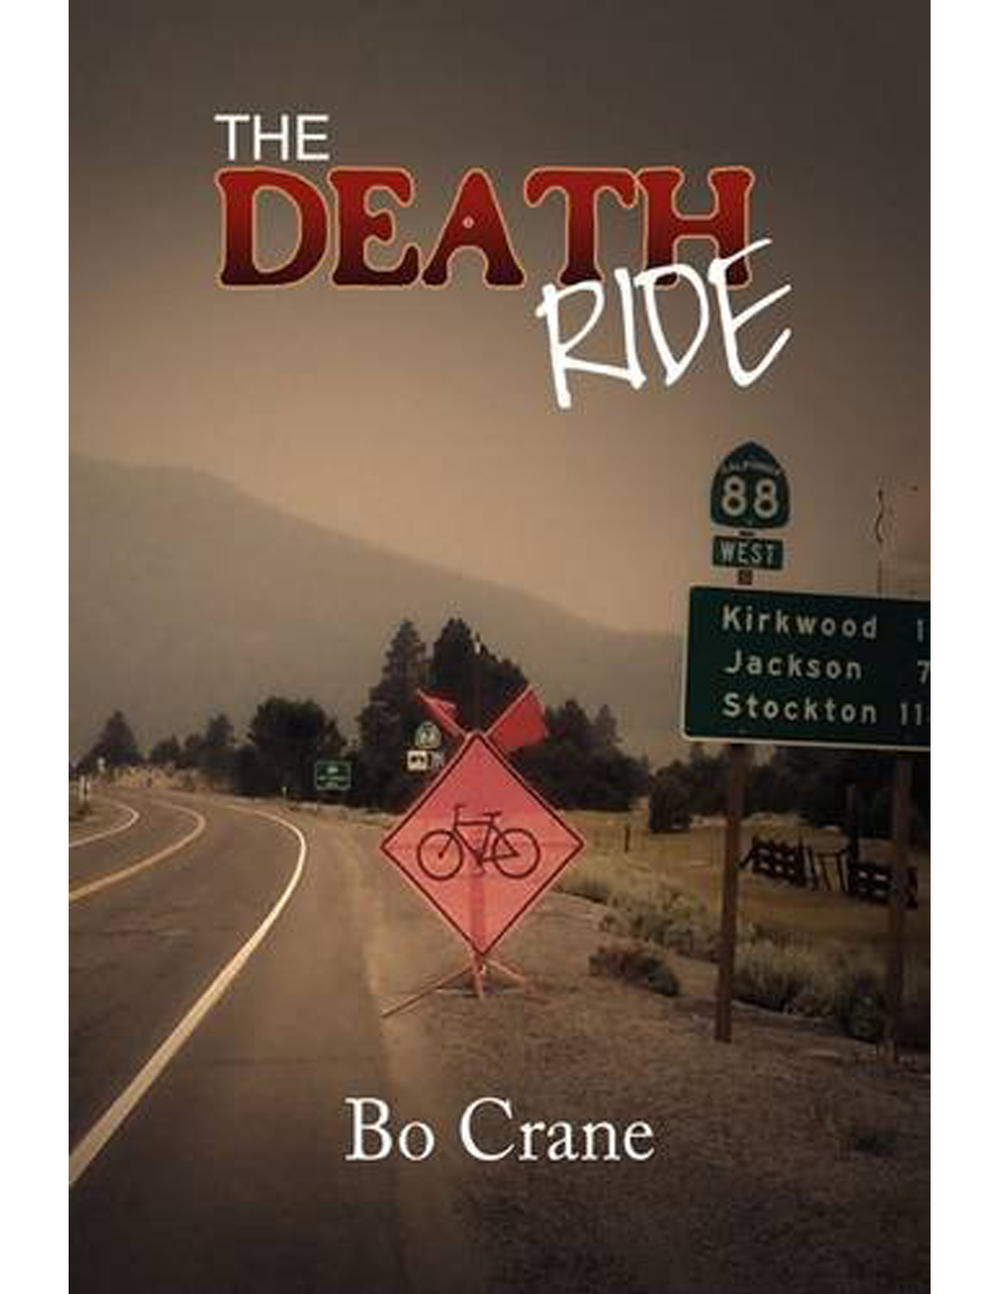 the death Ride by Bo Crane